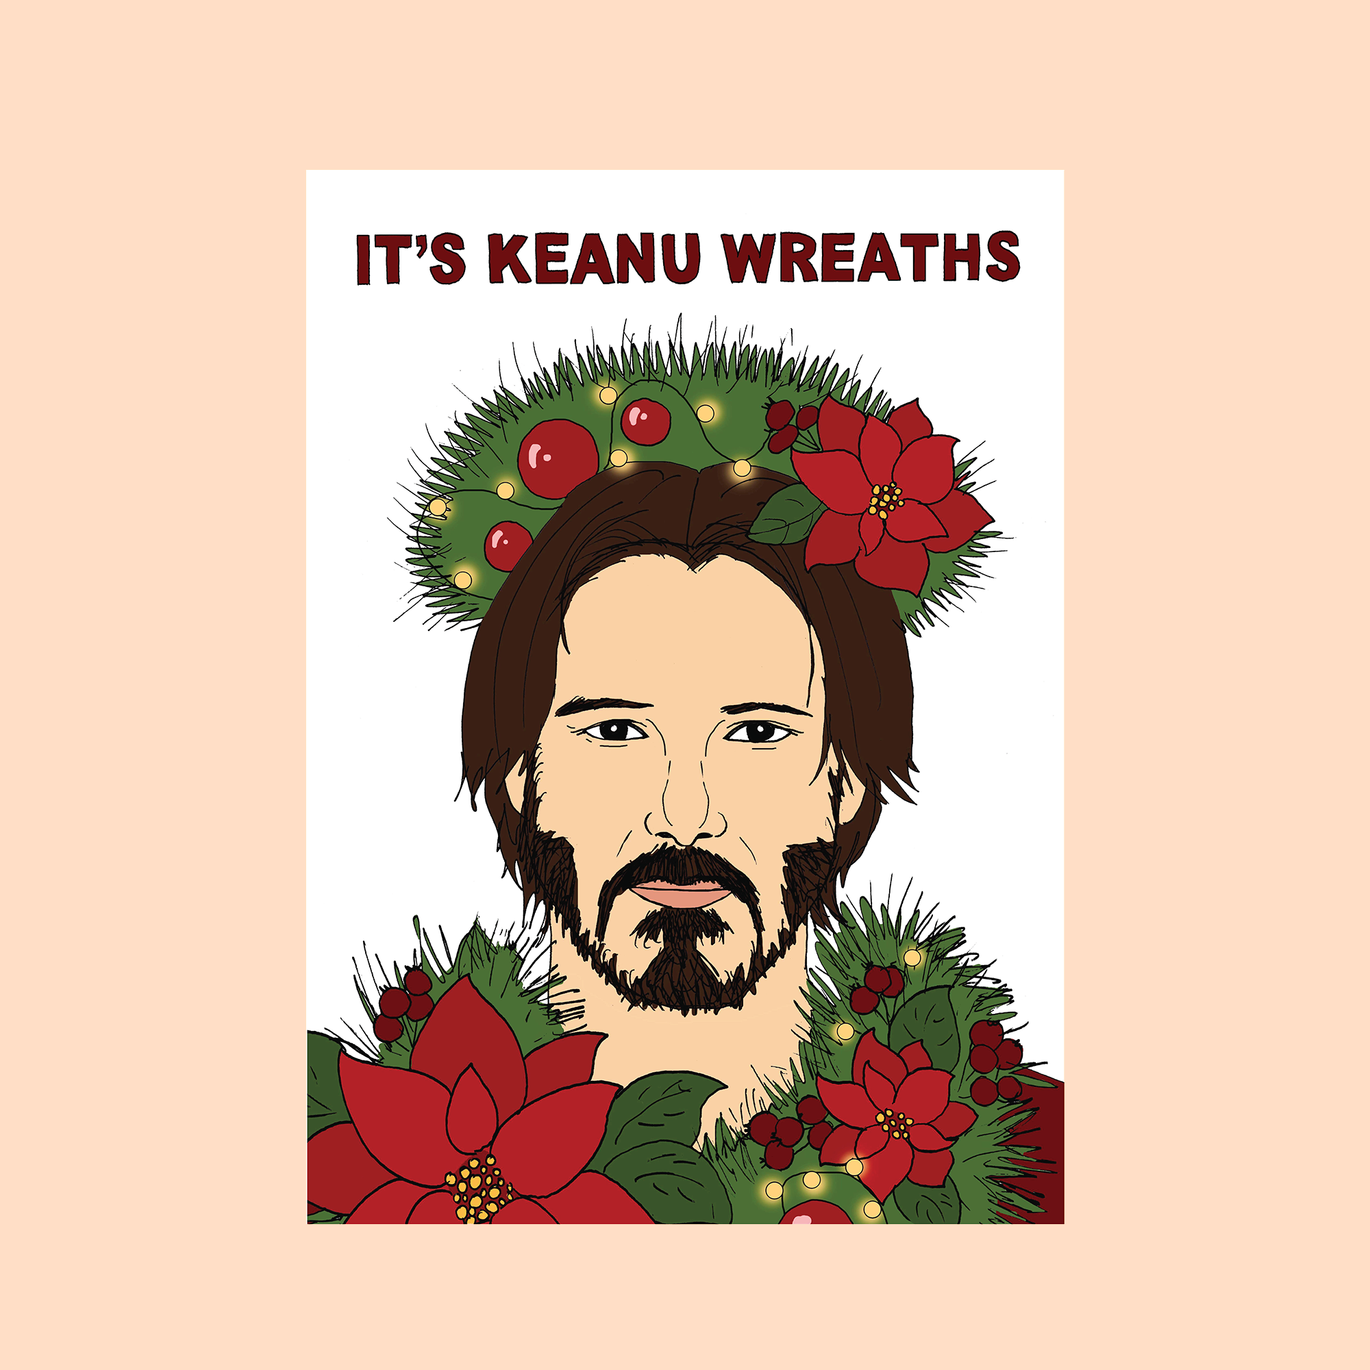 a greeting card with keanu reeves drawn on it surrounded by wreaths